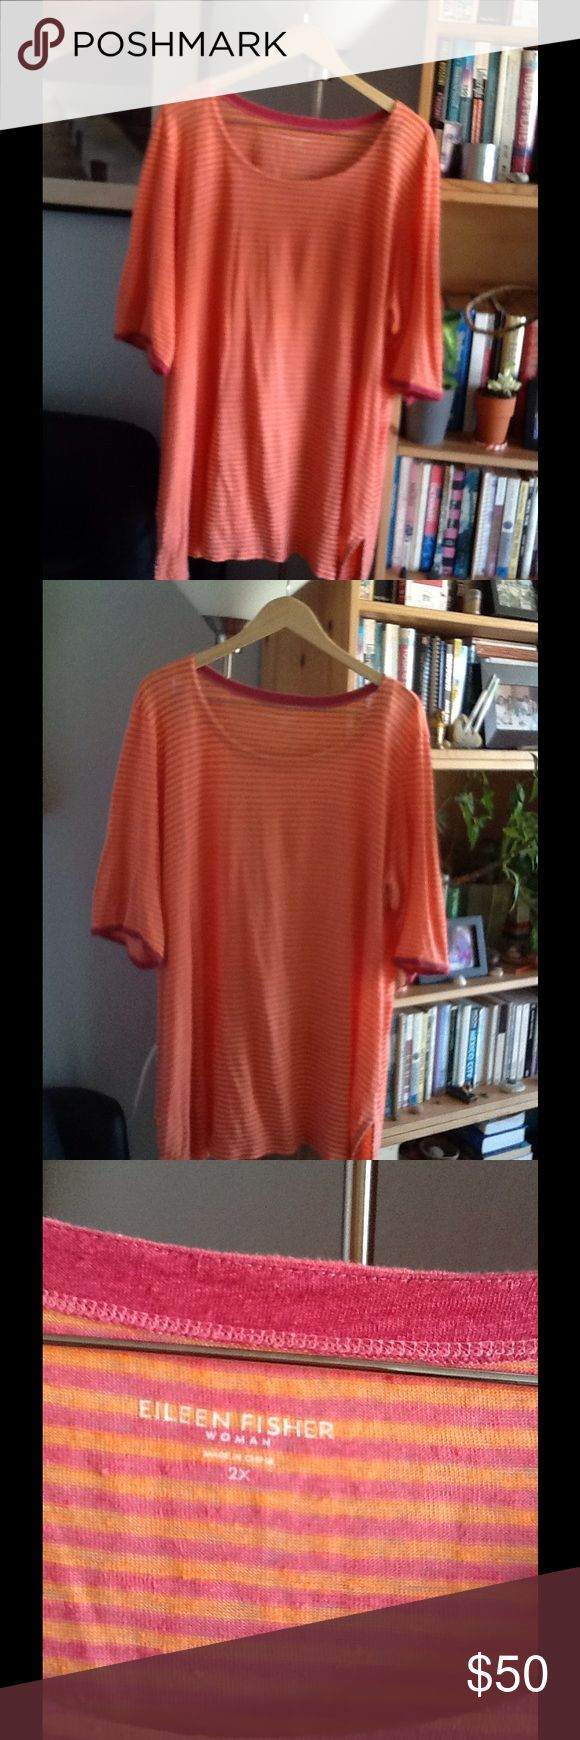 FANTASTIC EILEEN FISHER LINEN LONG TUNIC TOP This soft and wonderfully comfortable great looking top is sooo!! perfect for summer. Wear it with whites, beiges, jeans or leggings and it's always perfect. Eileen Fisher Tops Tunics